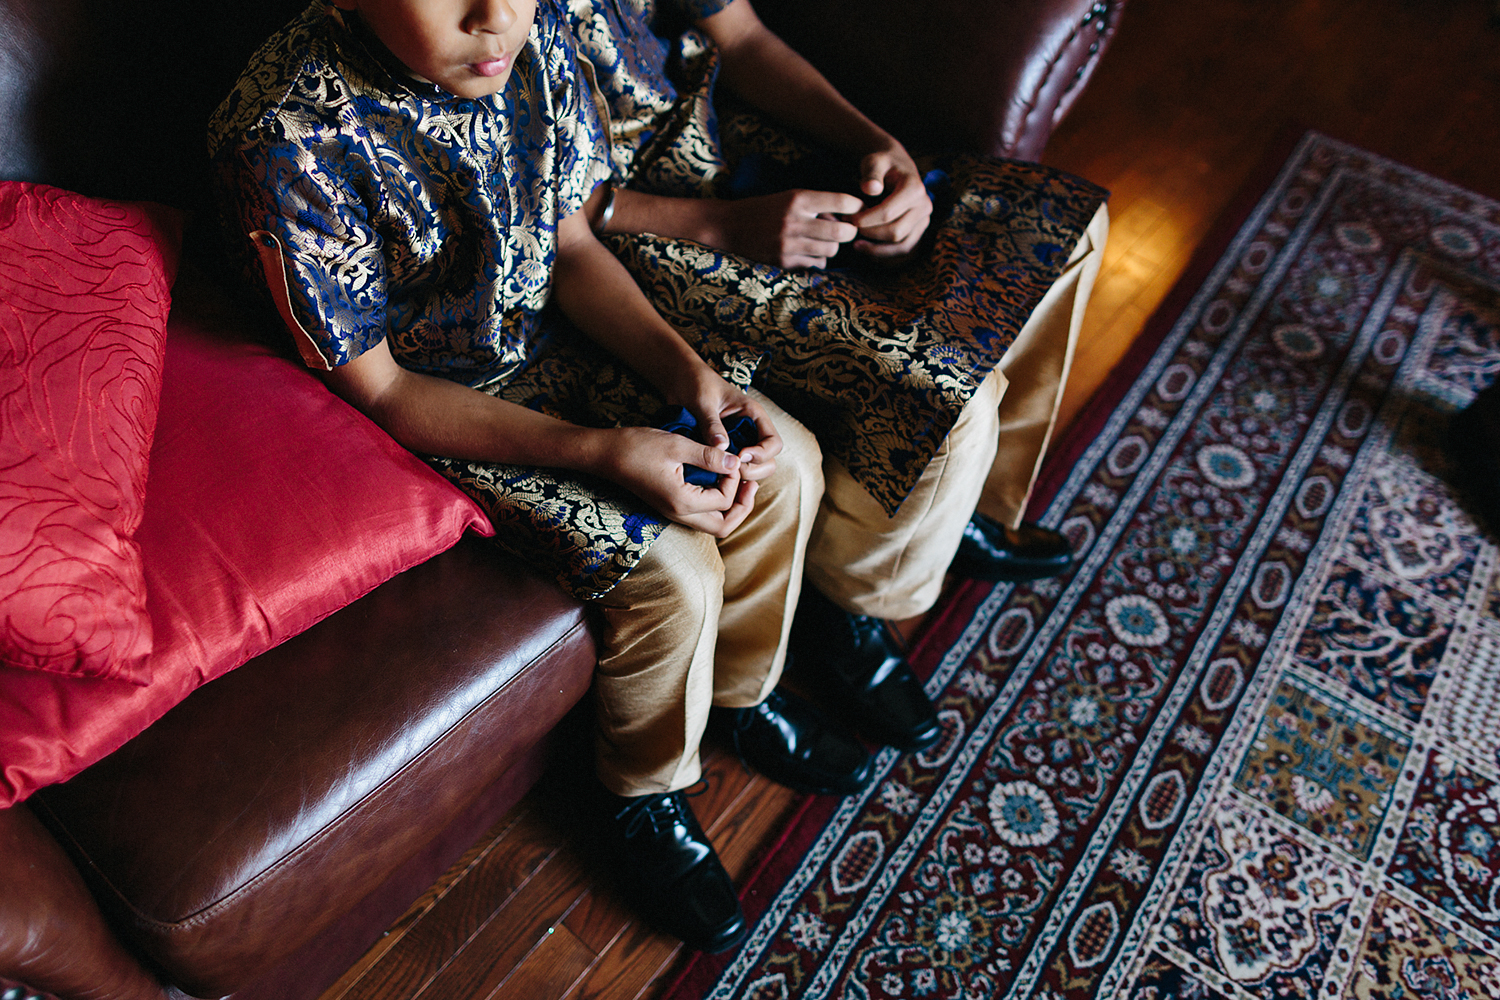 Toronto's-Best-Wedding-Photographers-Multicultural-wedding-specialty-ontario-port-perry-getting-ready-little-boys.jpg